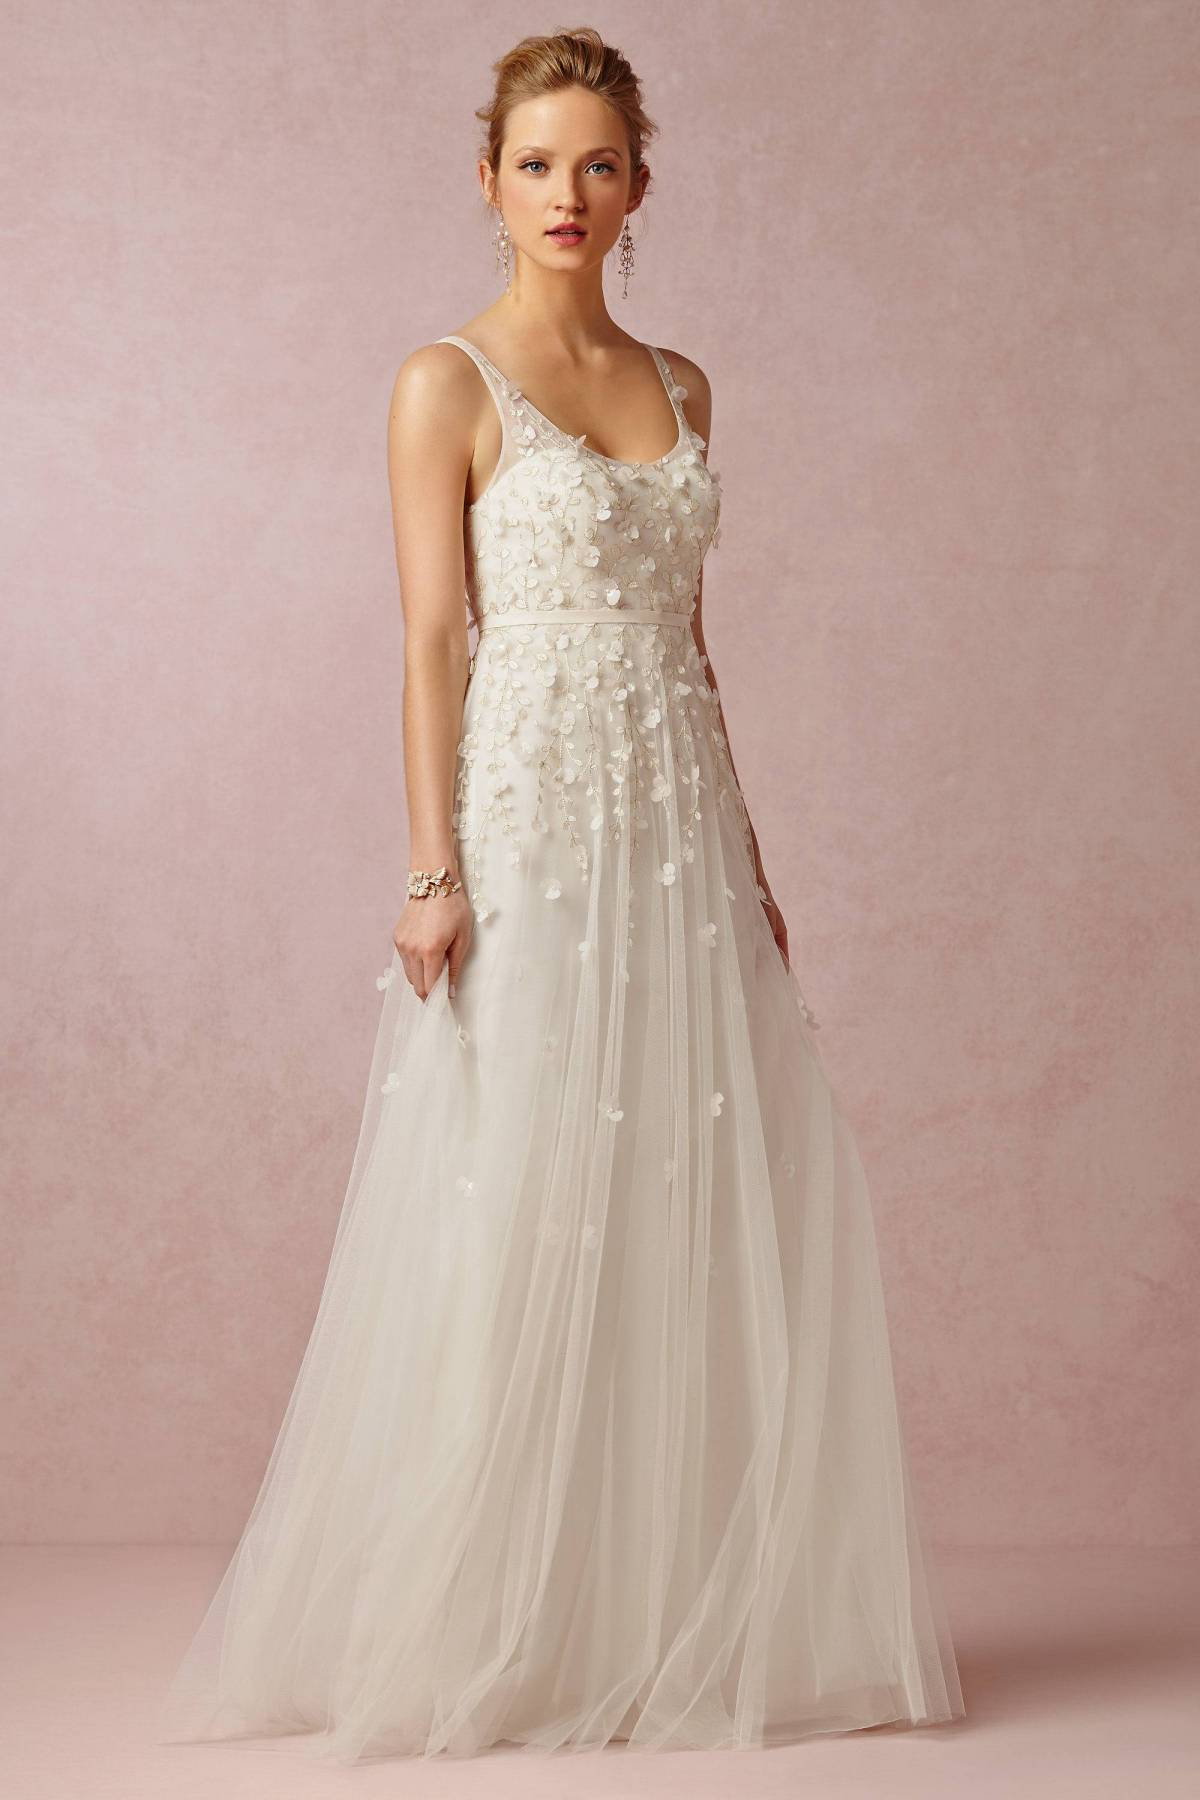 Luisa Gown $2,200